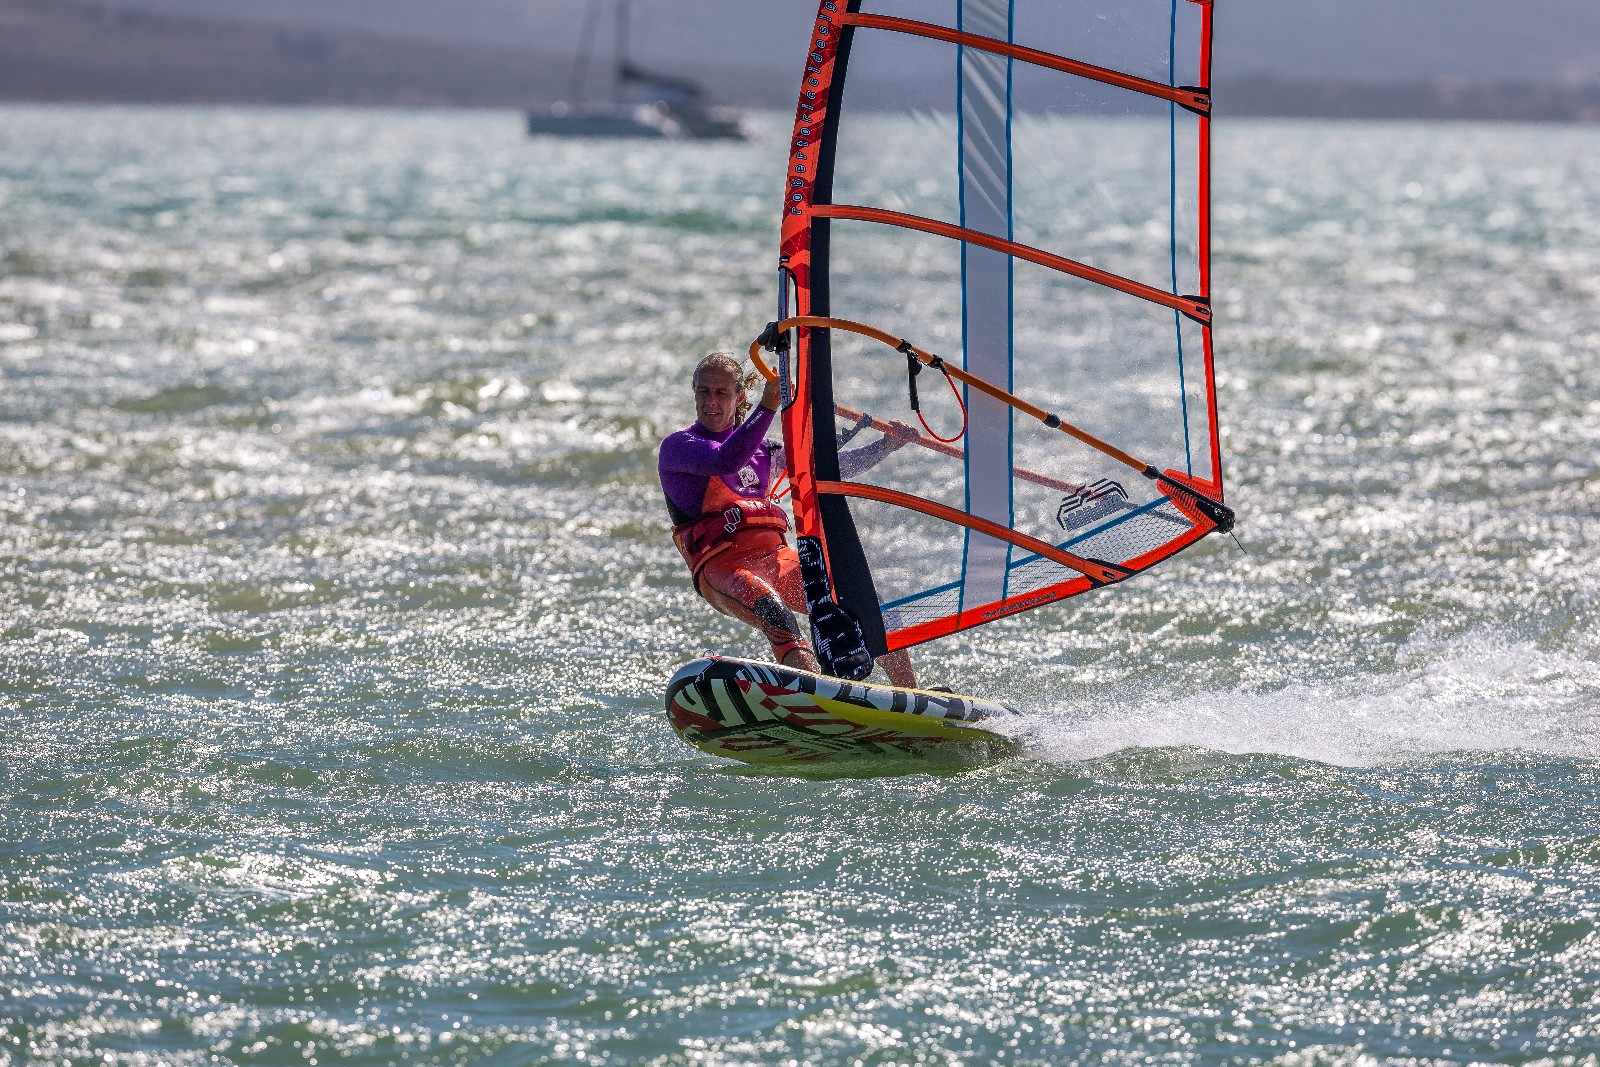 airwindsurf-freeride_28659053861_o1